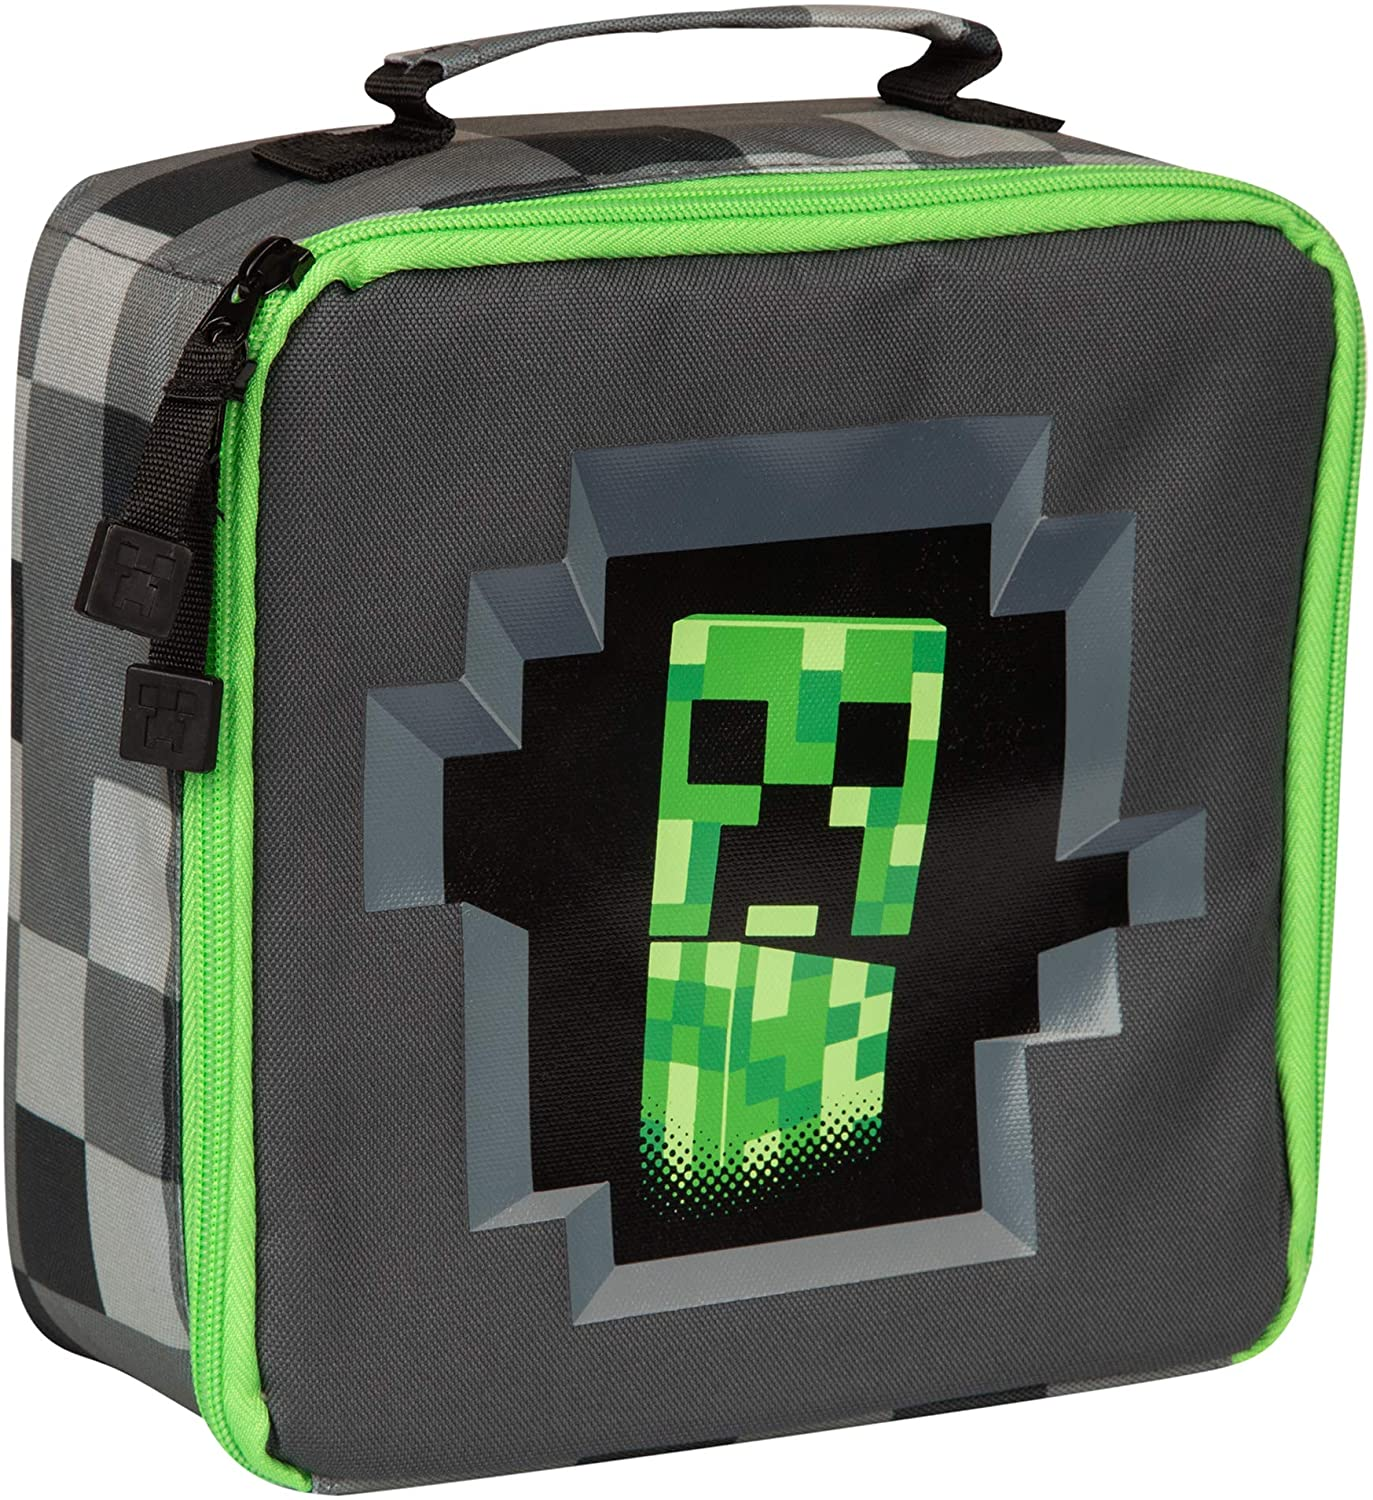 Minecraft Creepey Creeper Lunch Box